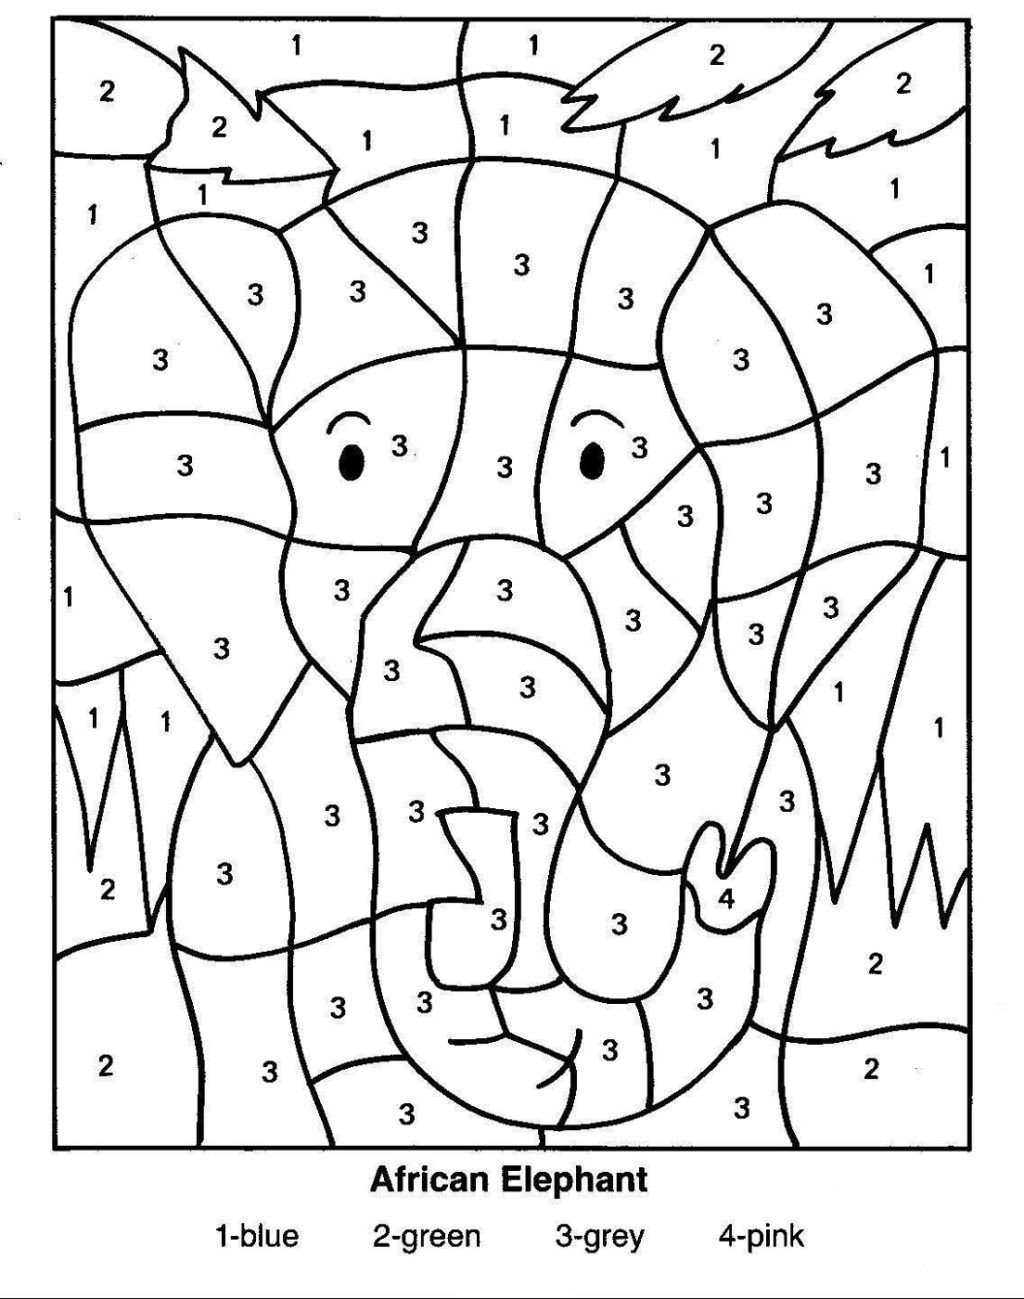 Kindergarten Color by Number Worksheets Worksheet Worksheet Free Color by Number Worksheets Math